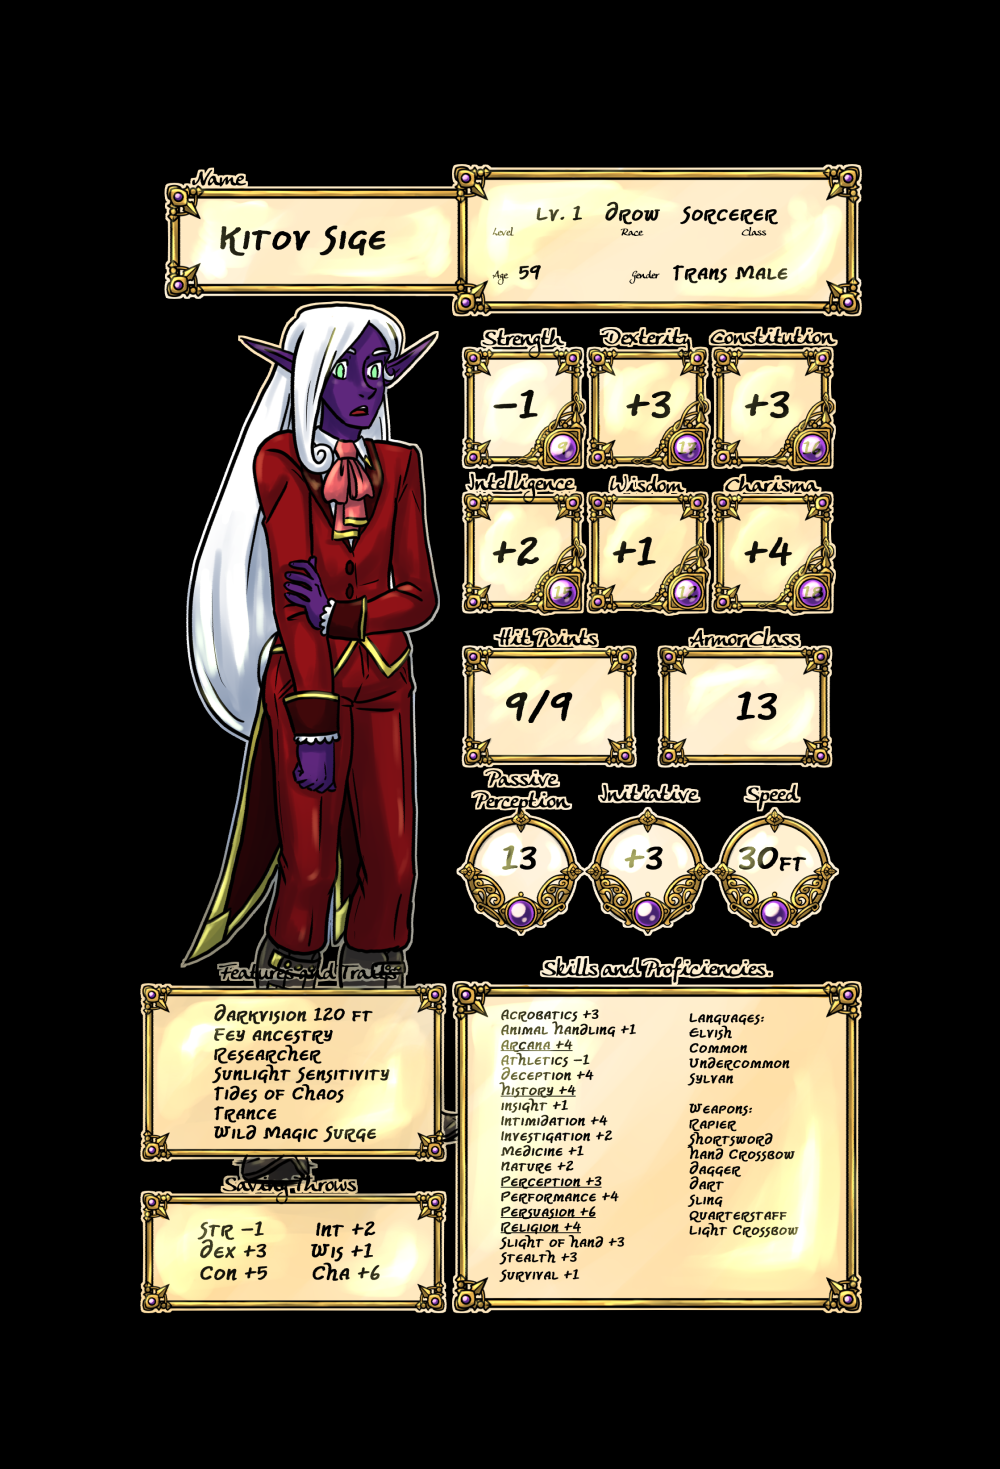 Crypts and Cantrips Kitov's character sheet by kytri